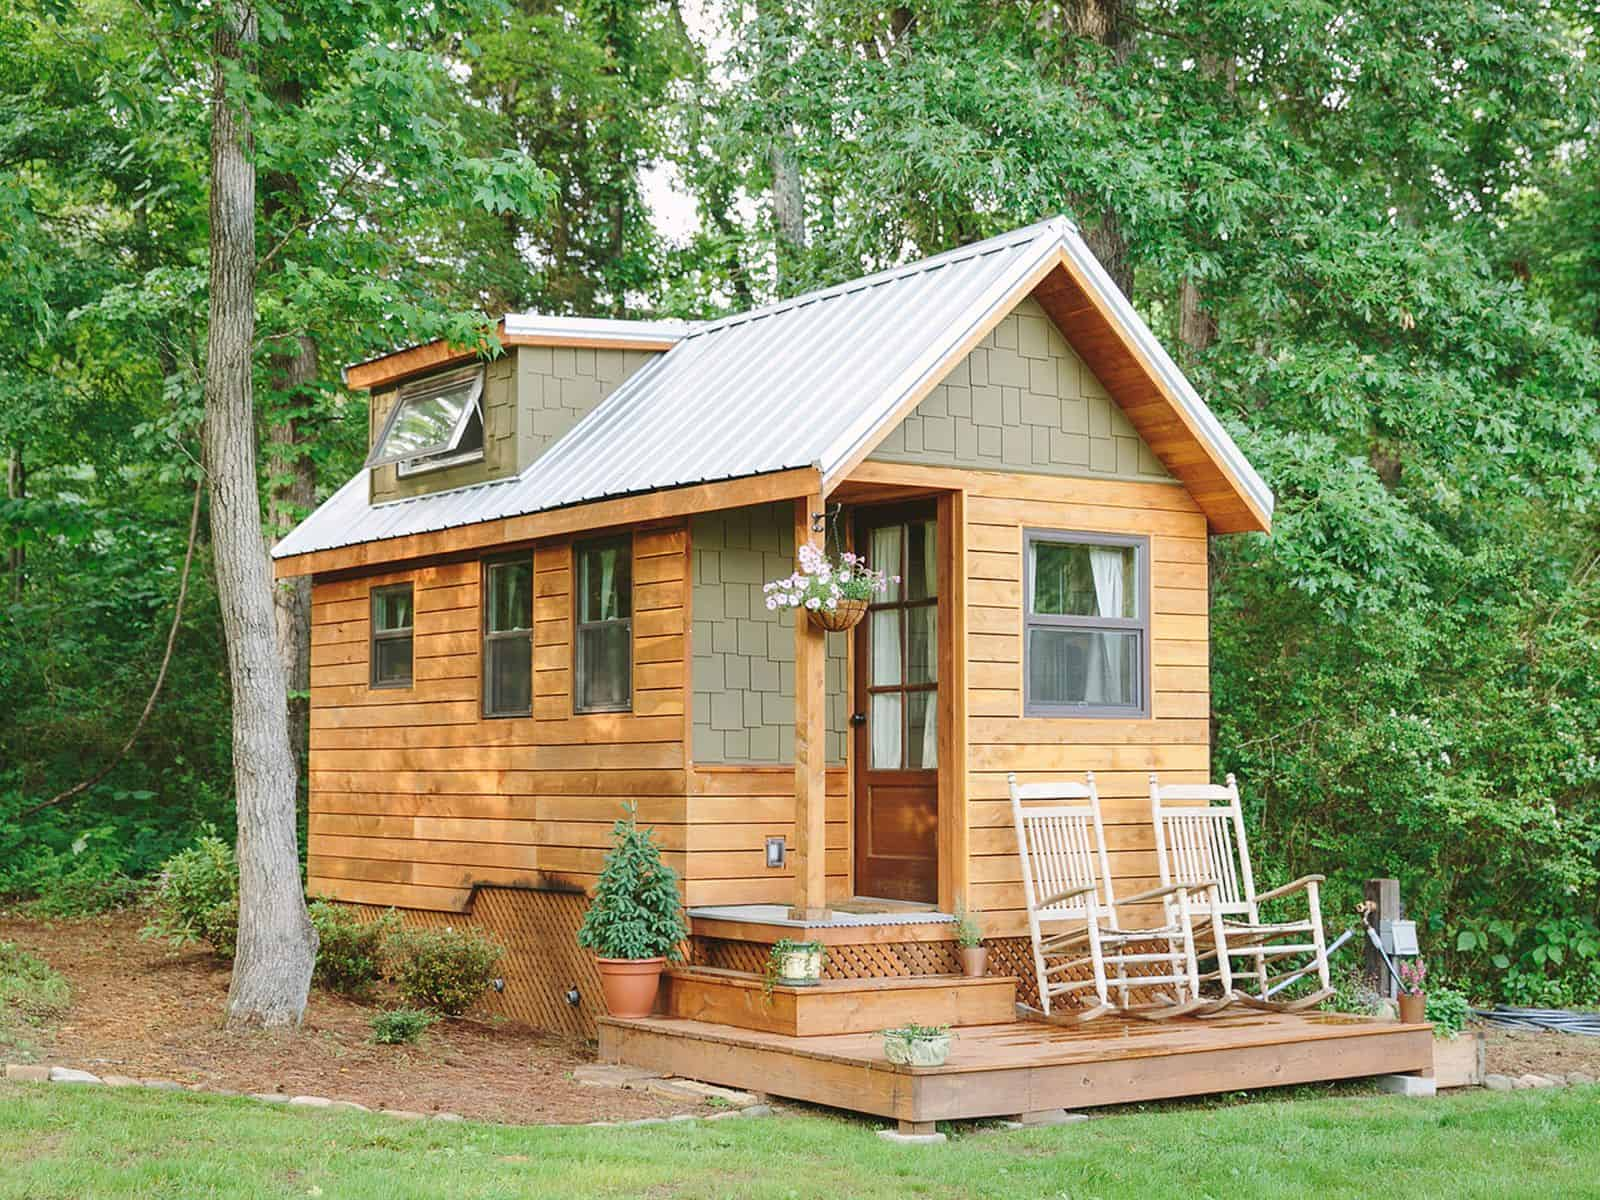 Extremely tiny homes minimalistic living in style for Tiny cabin plans